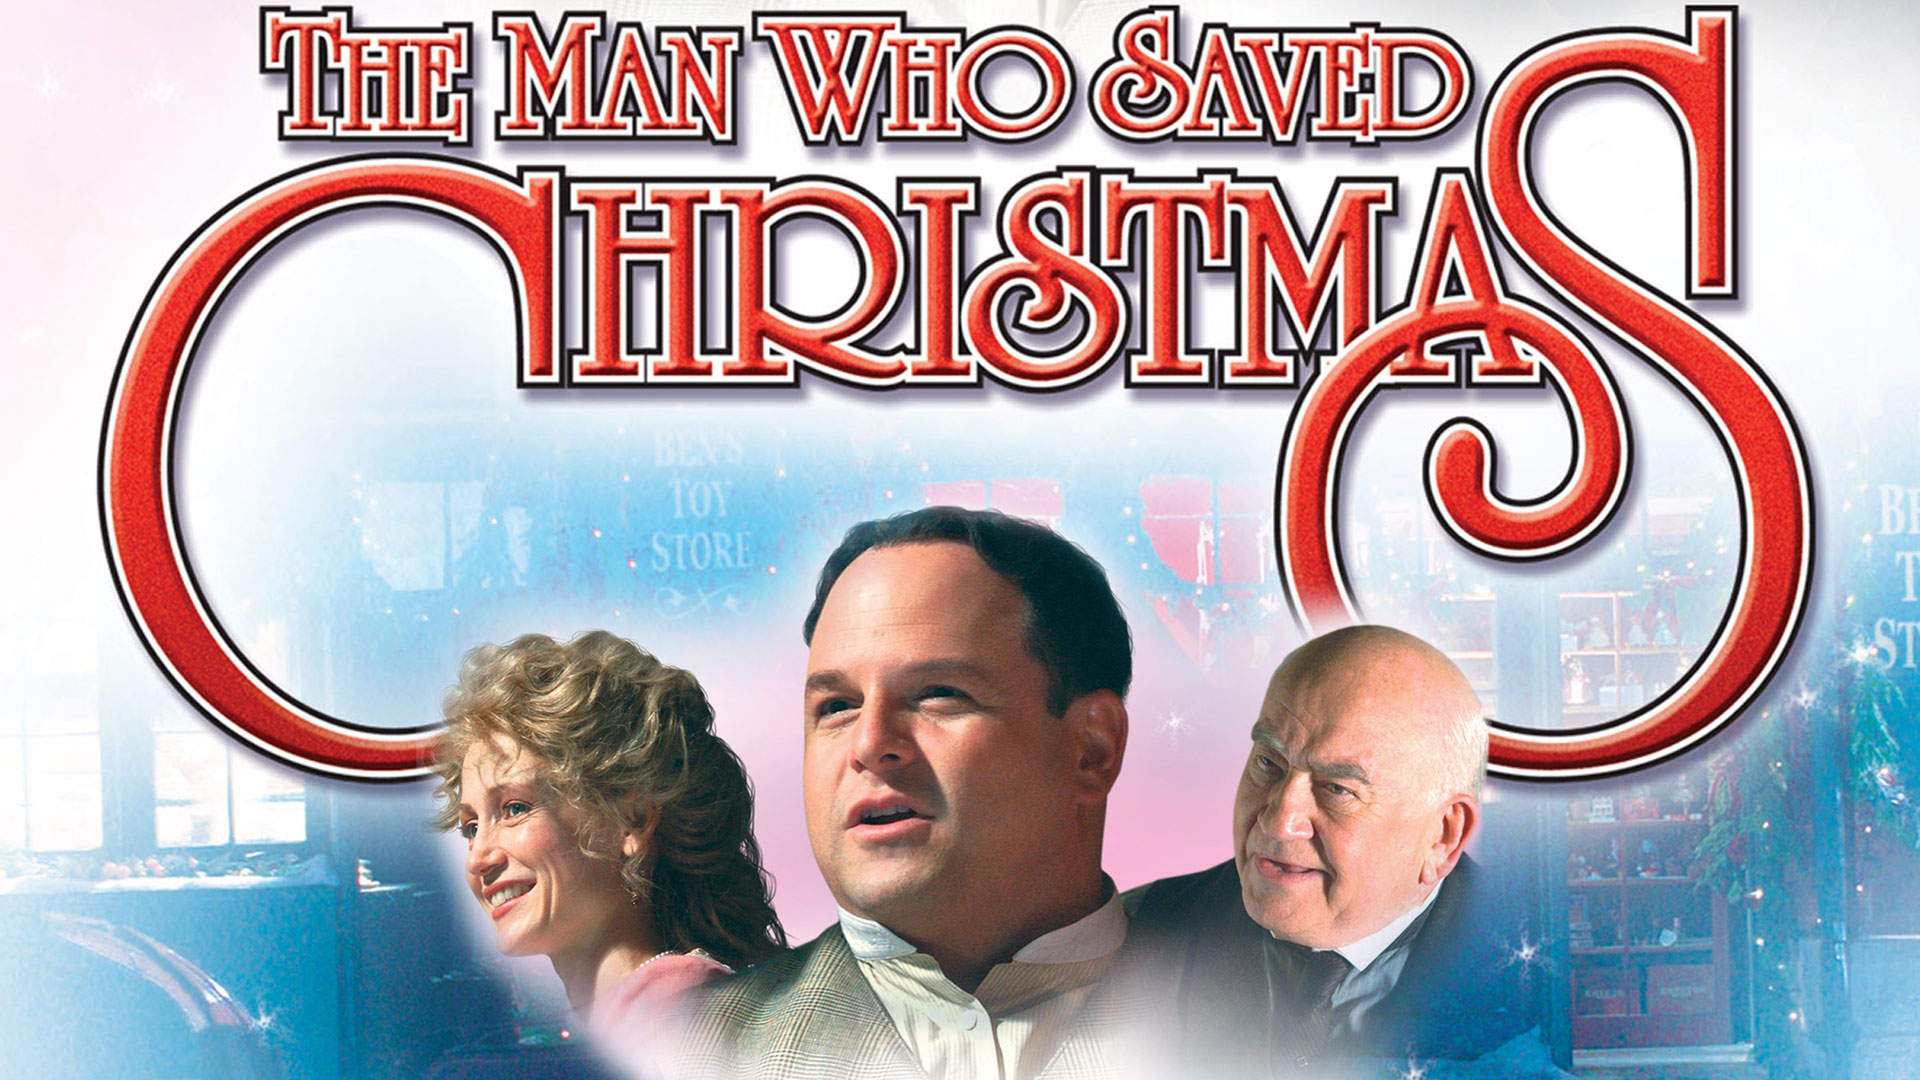 The Man Who Saved Christmas